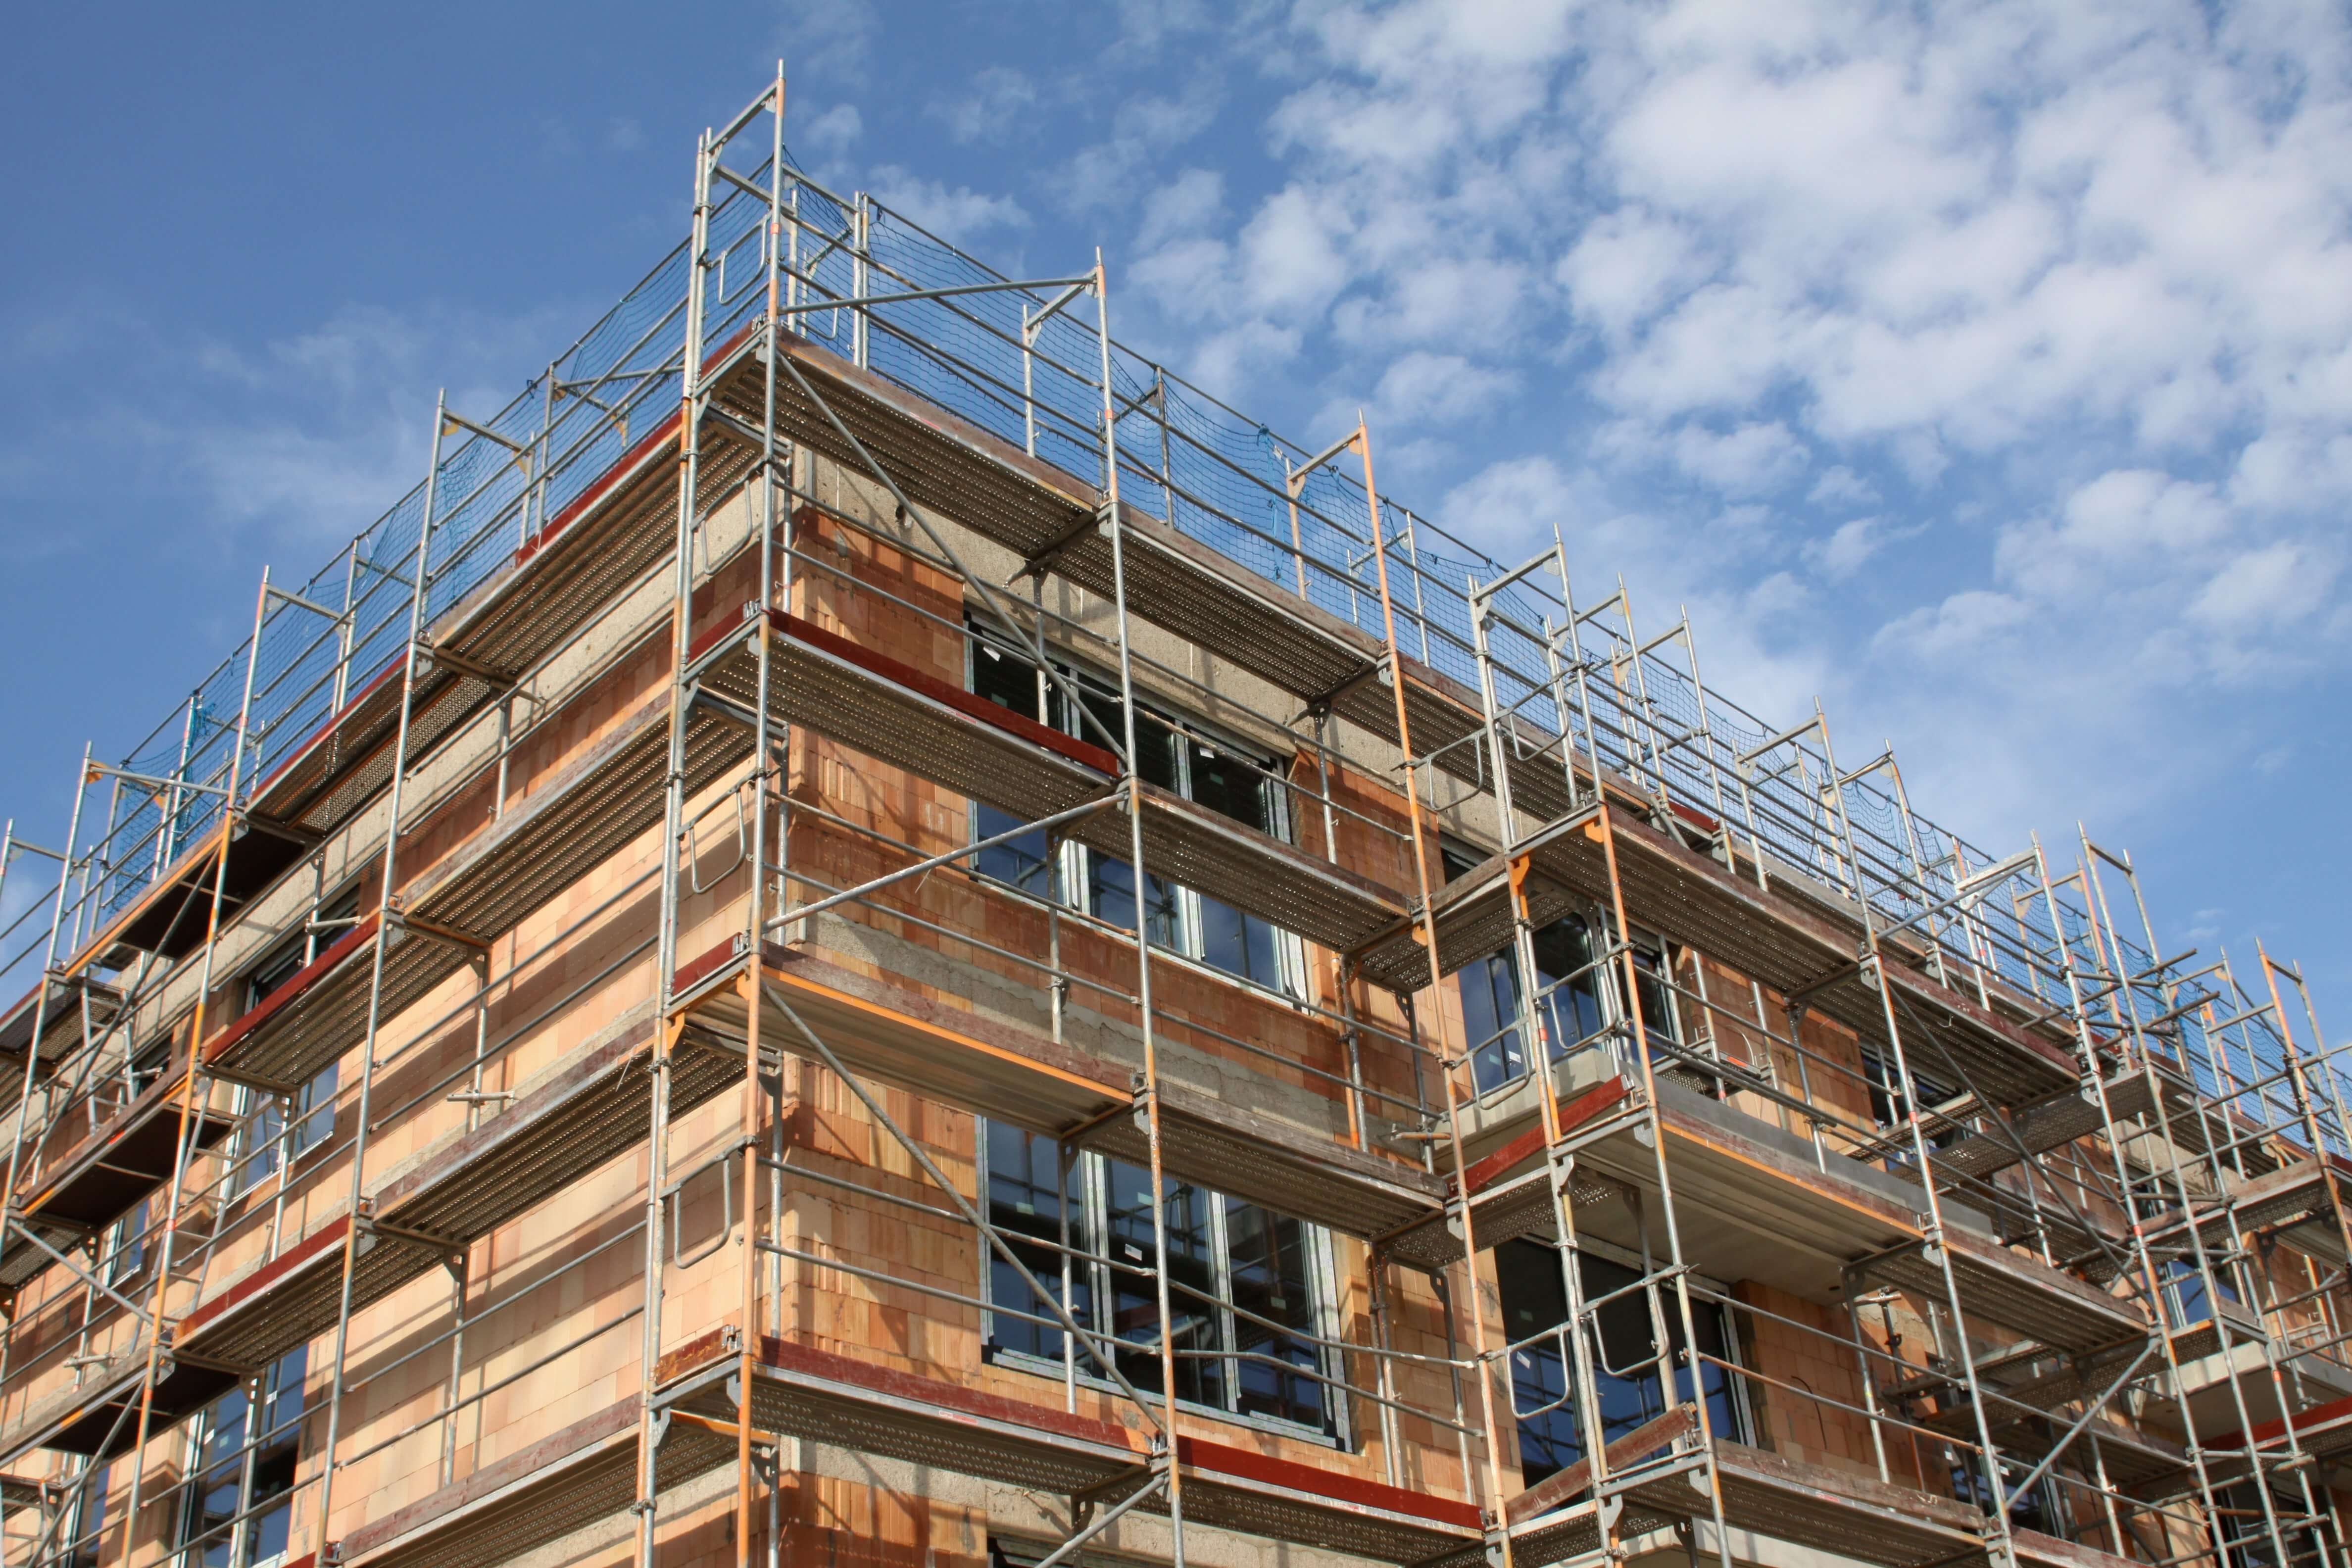 What Is The Most Dangerous Type Of Building Construction